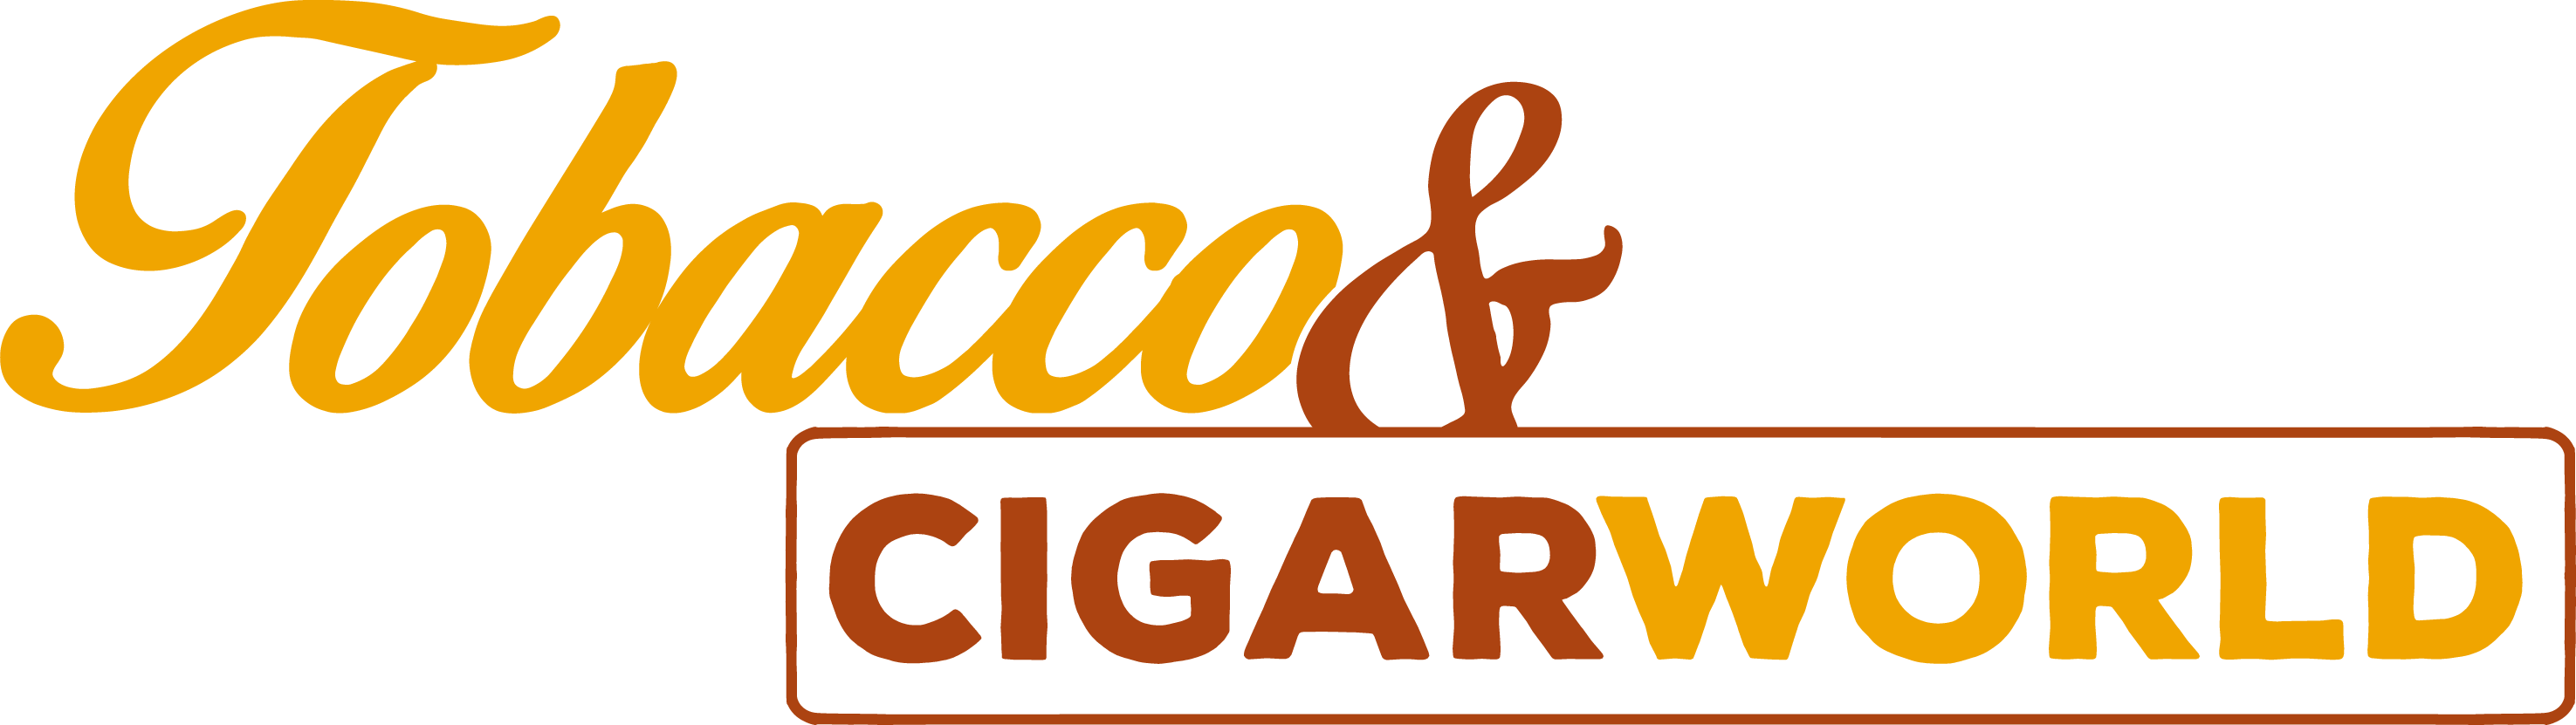 Tobacco Cigarworld Logo